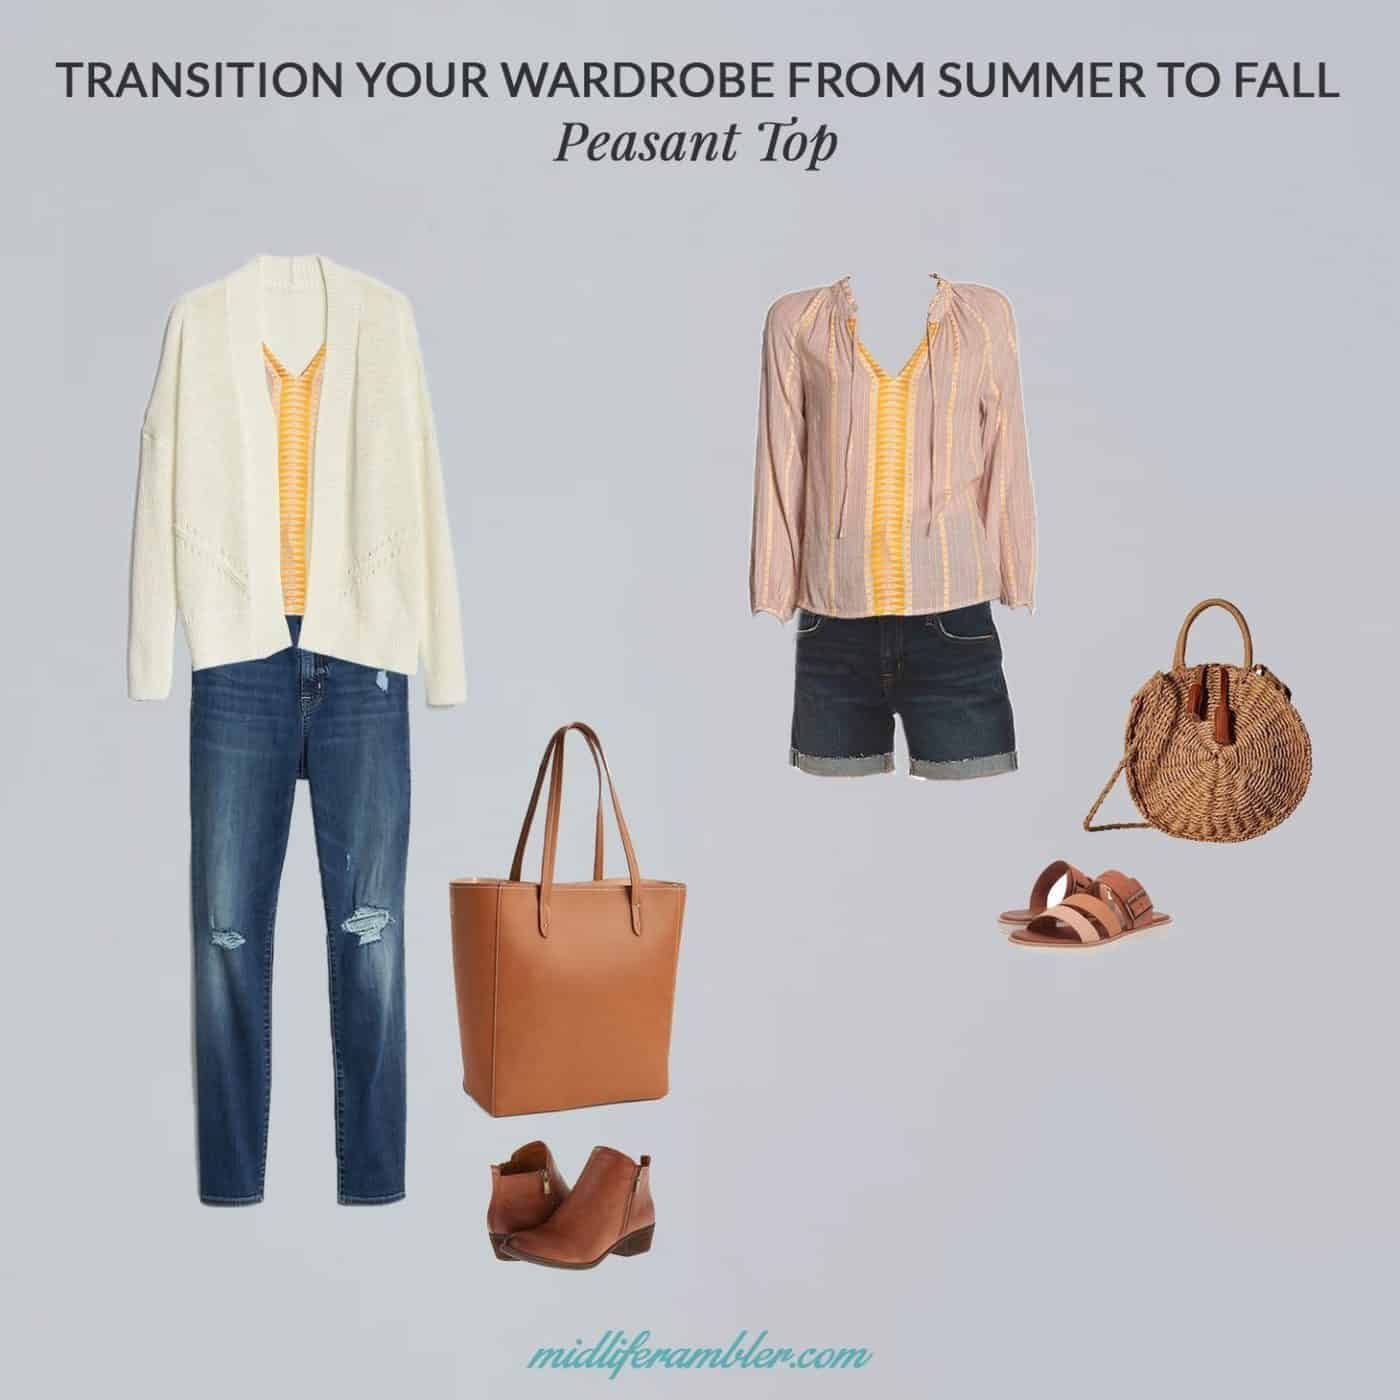 5 Pieces You Can Wear Now and Easily Transition from Summer to Fall Outfits 4